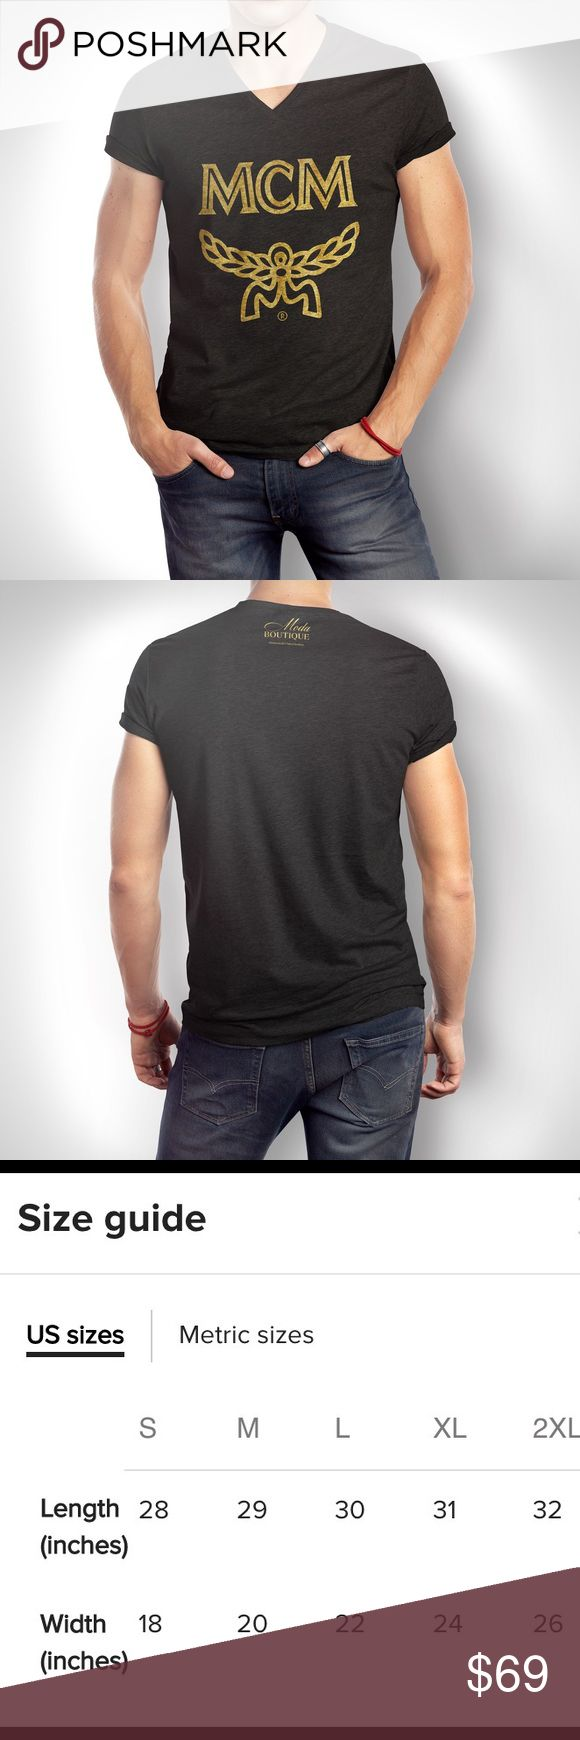 NWT MCM x Moda Boutique Gold Foil V-Neck Tee New with tags Custom printed (DTG) and made to order MCM x Moda Boutique  Men's - Gold Foil Fitted V-Neck  BLACK We use only the highest quality ring spun cotton tshirt that is stretchy, durable, light weight, and SOFT.   Like us on Facebook! @modabyboutique or 'Moda Boutique SF' Link in bio ☺️ MCM Shirts Tees - Short Sleeve